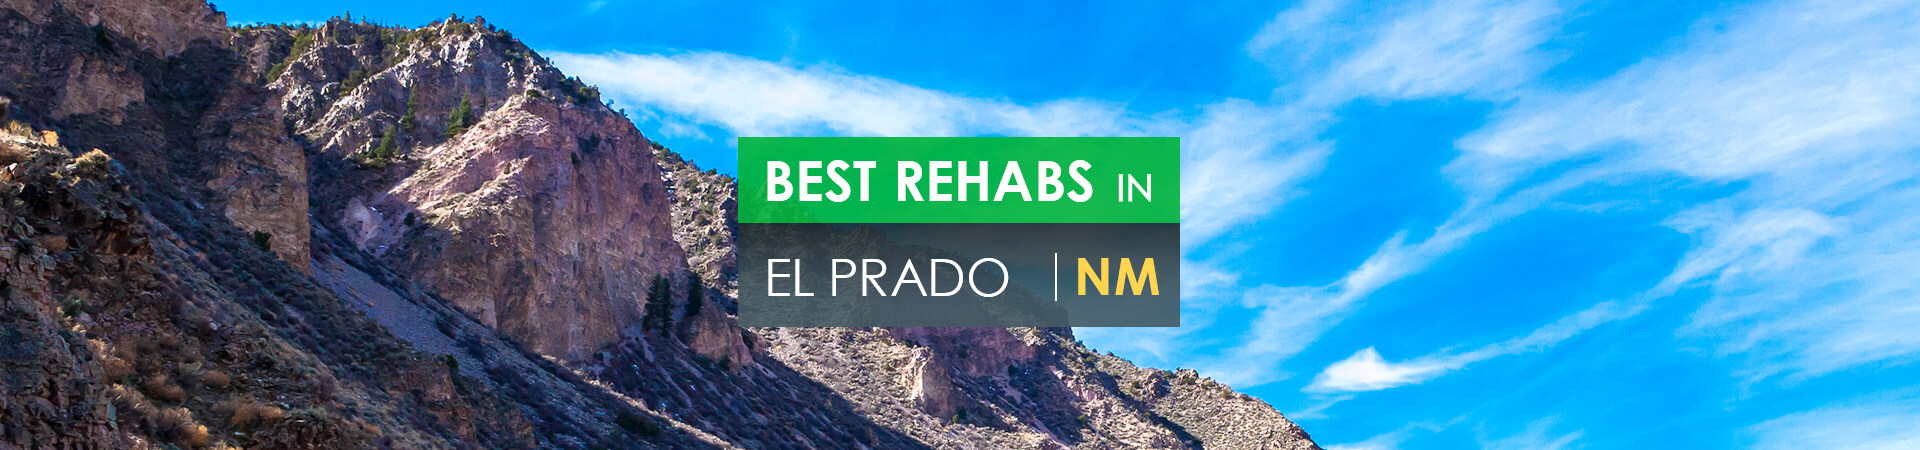 Best rehabs in El Prado, NM